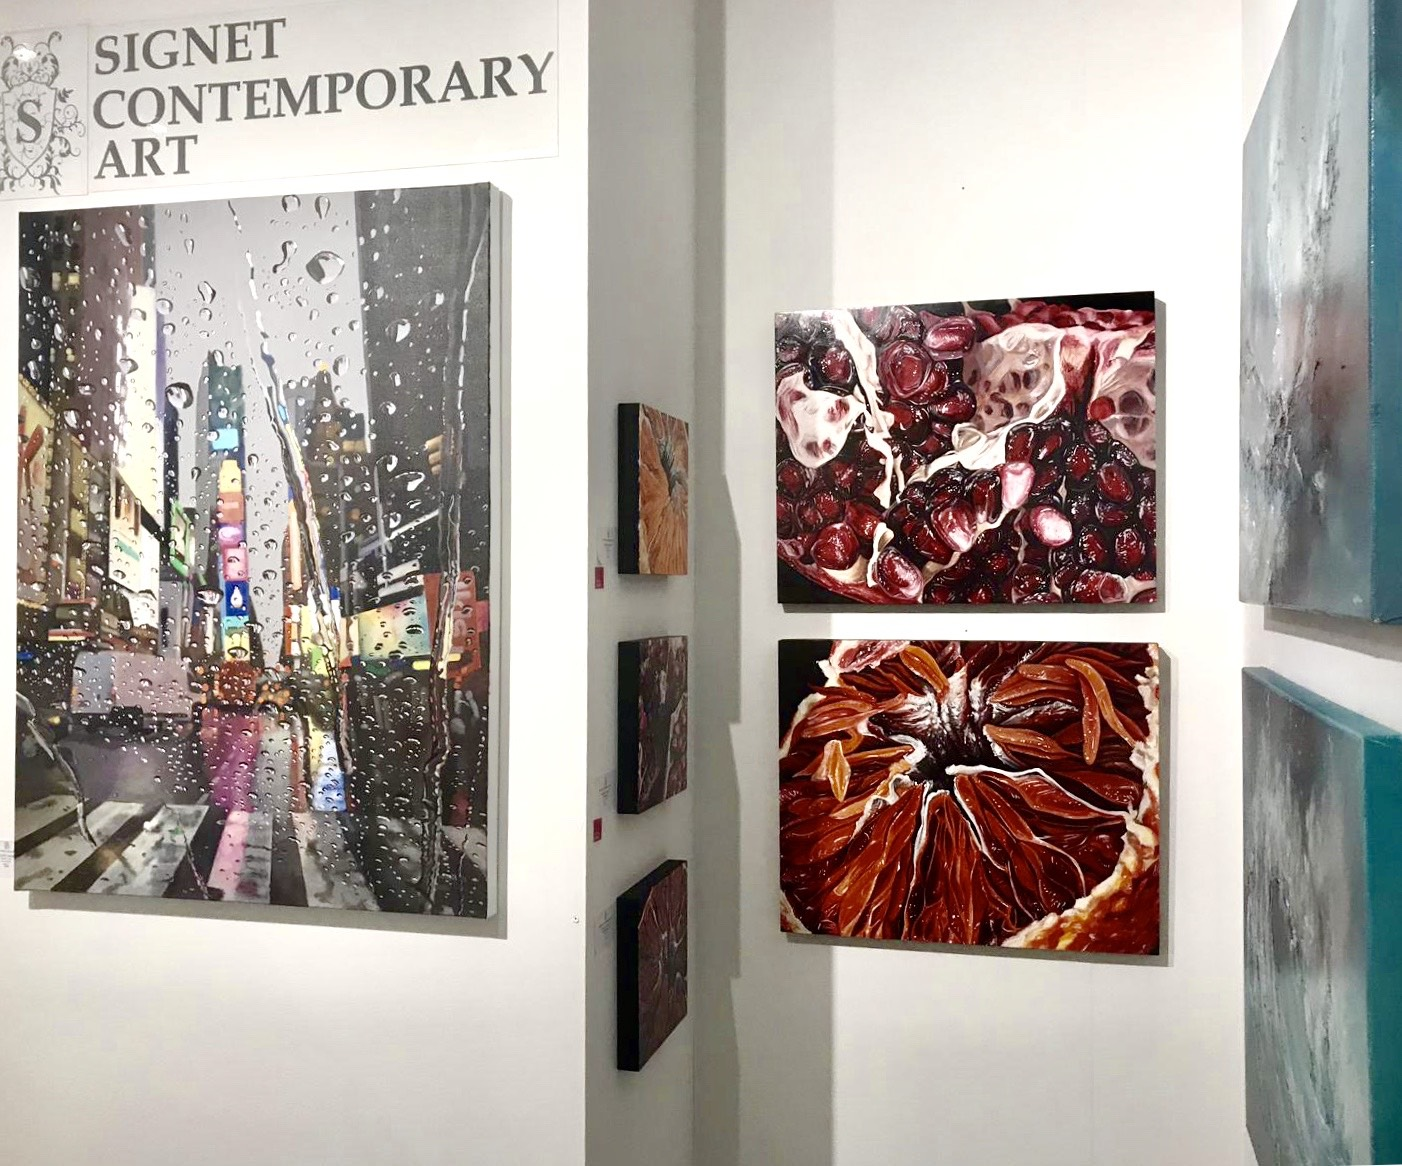 Angela Faustina's POMEGRANATE and BLOOD ORANGE oil paintings at Signet Contemporary Art at Affordable Art Fair NYC, New York, 2019